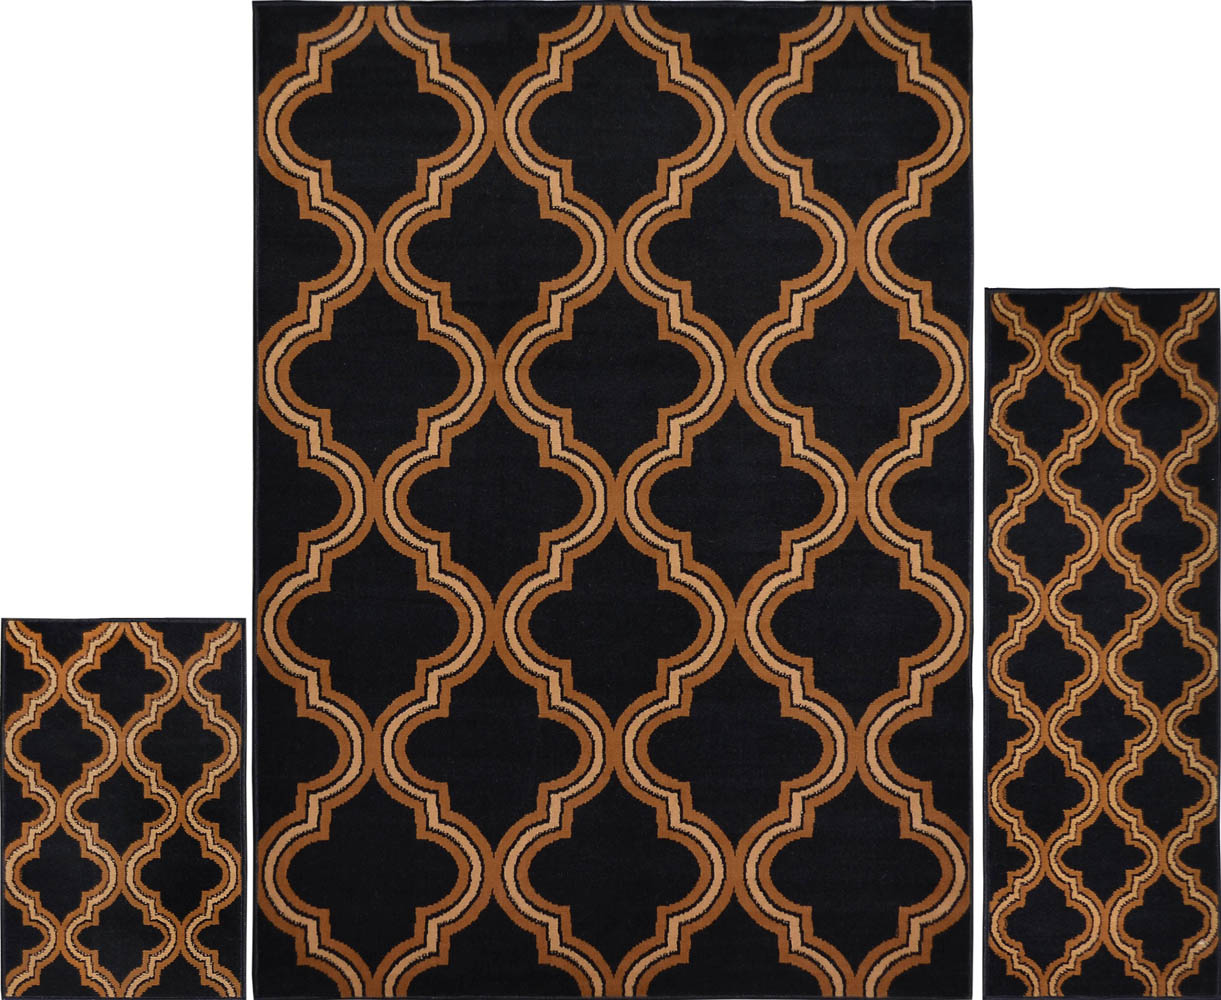 3-Pc-Set-Modern-Contemporary-Geometric-Area-Rug-Runner-Accent-Mat-Carpet thumbnail 16